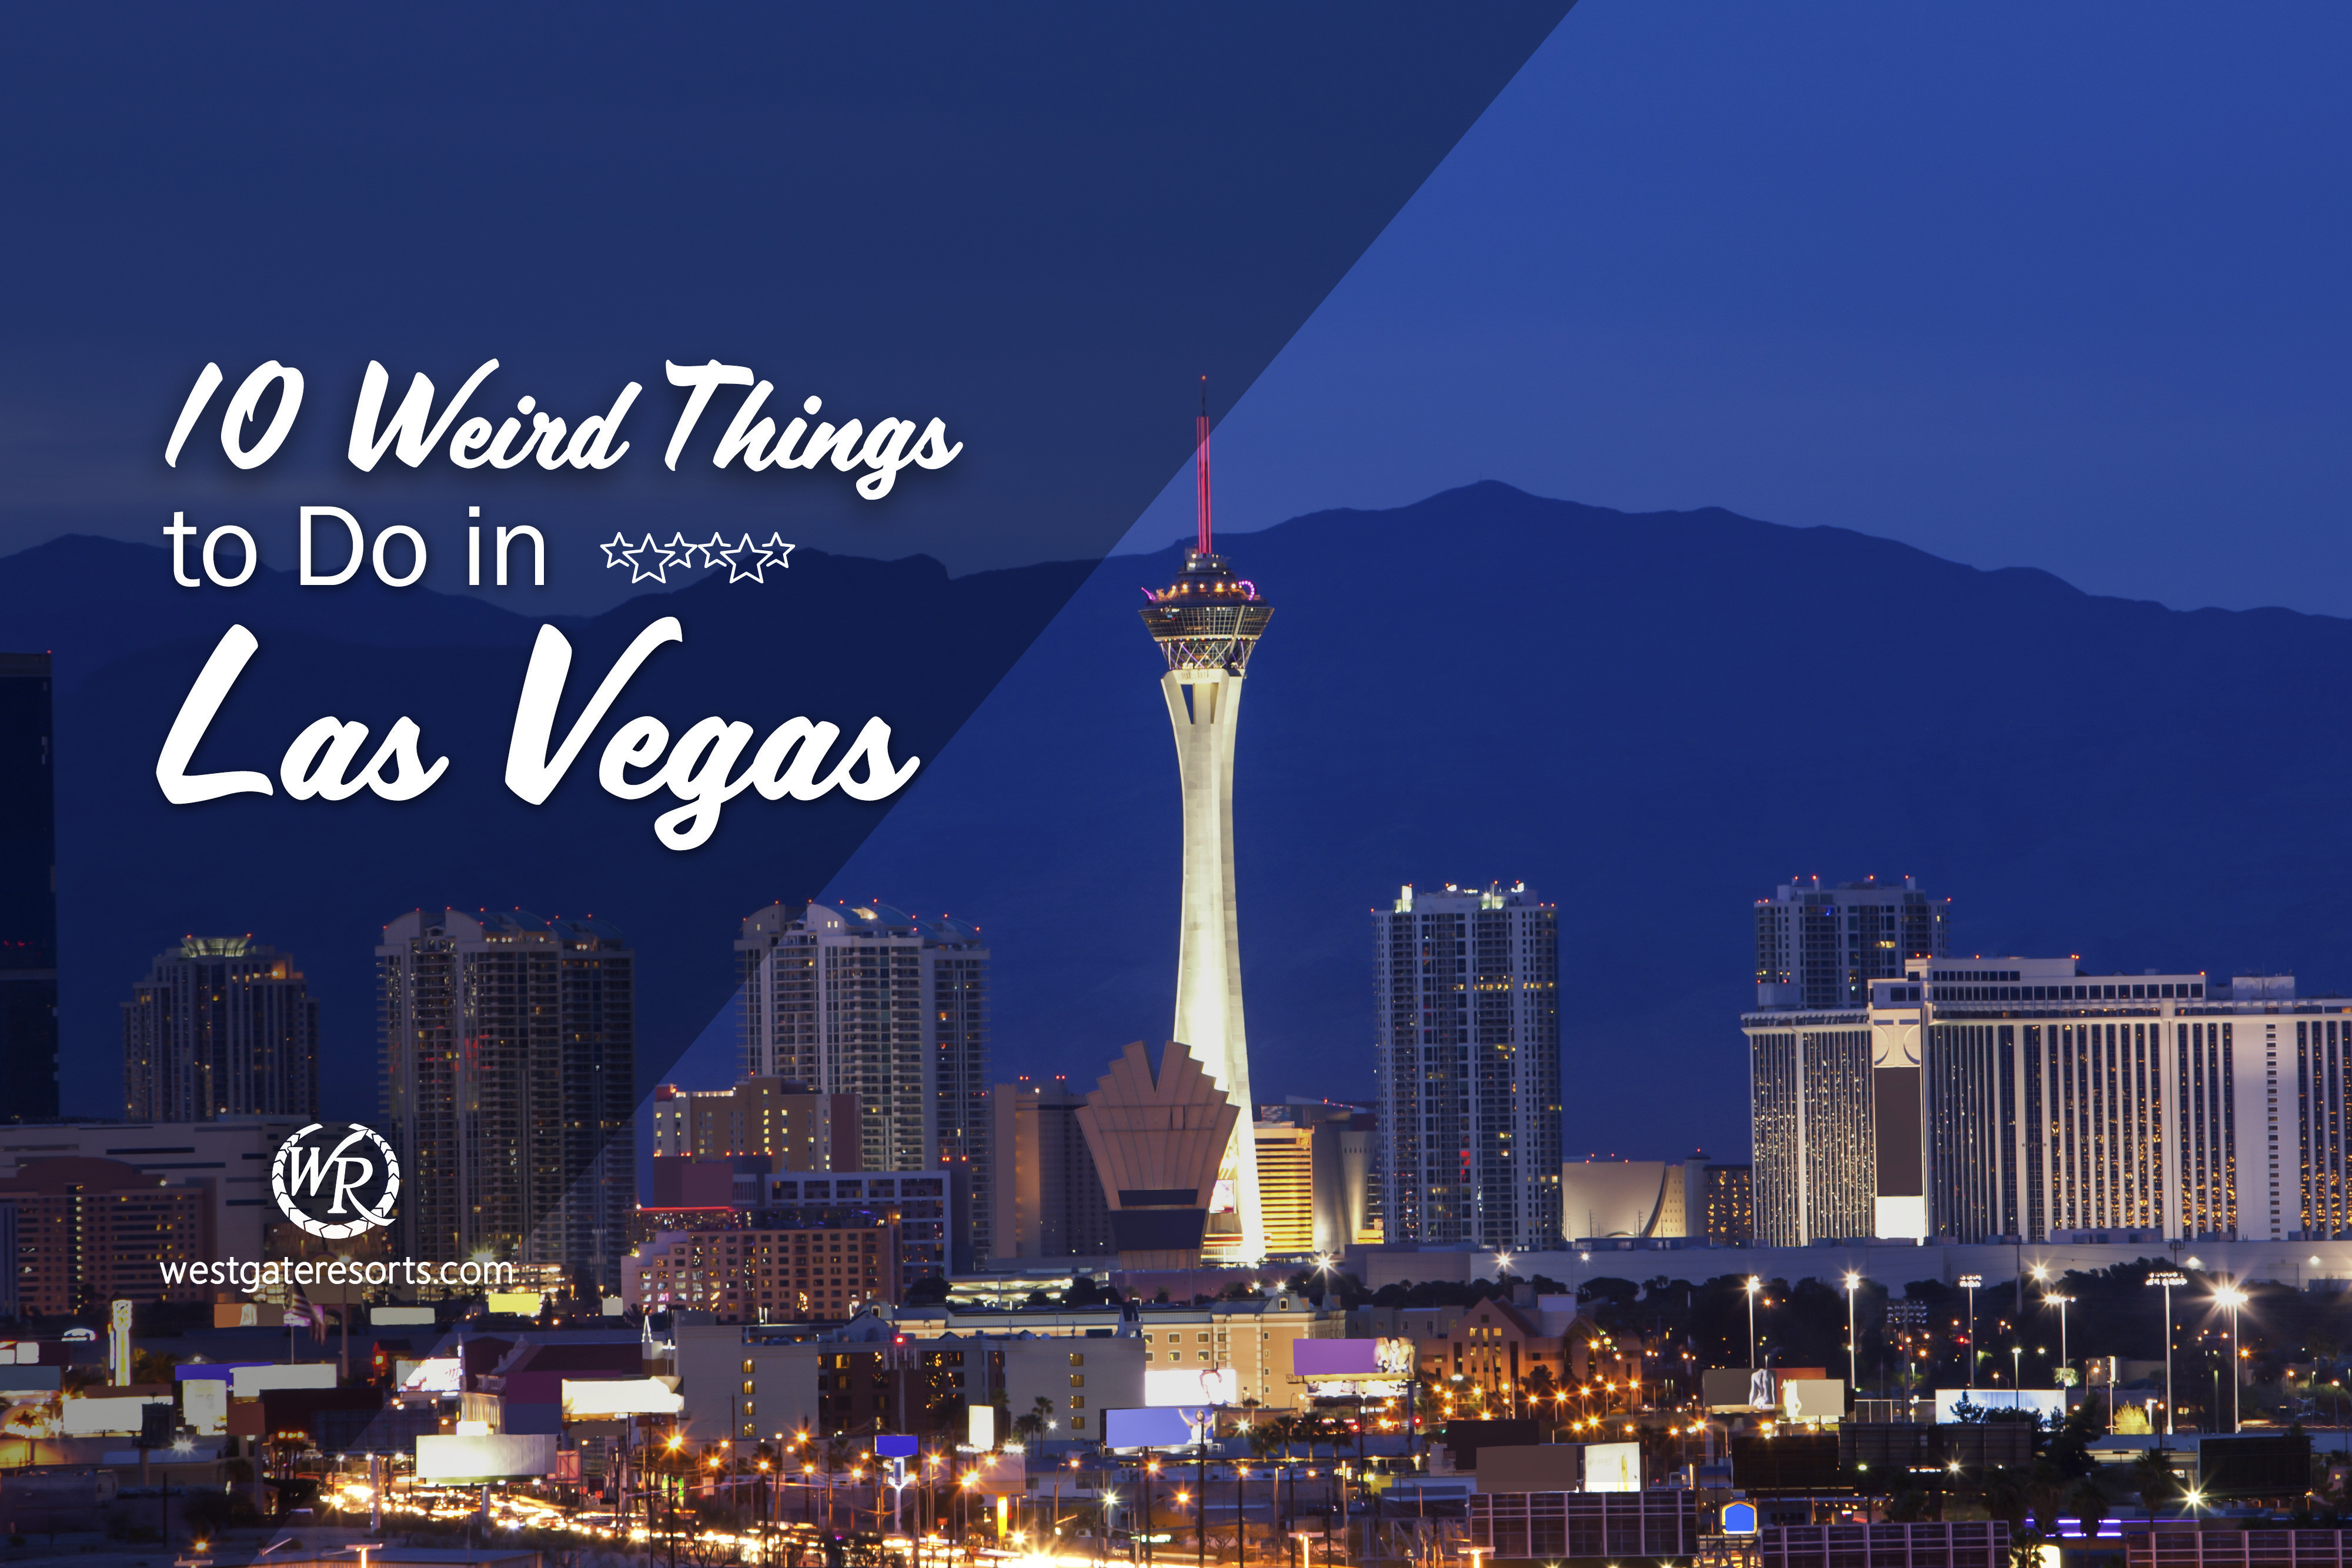 10 Weird Things to Do in Las Vegas